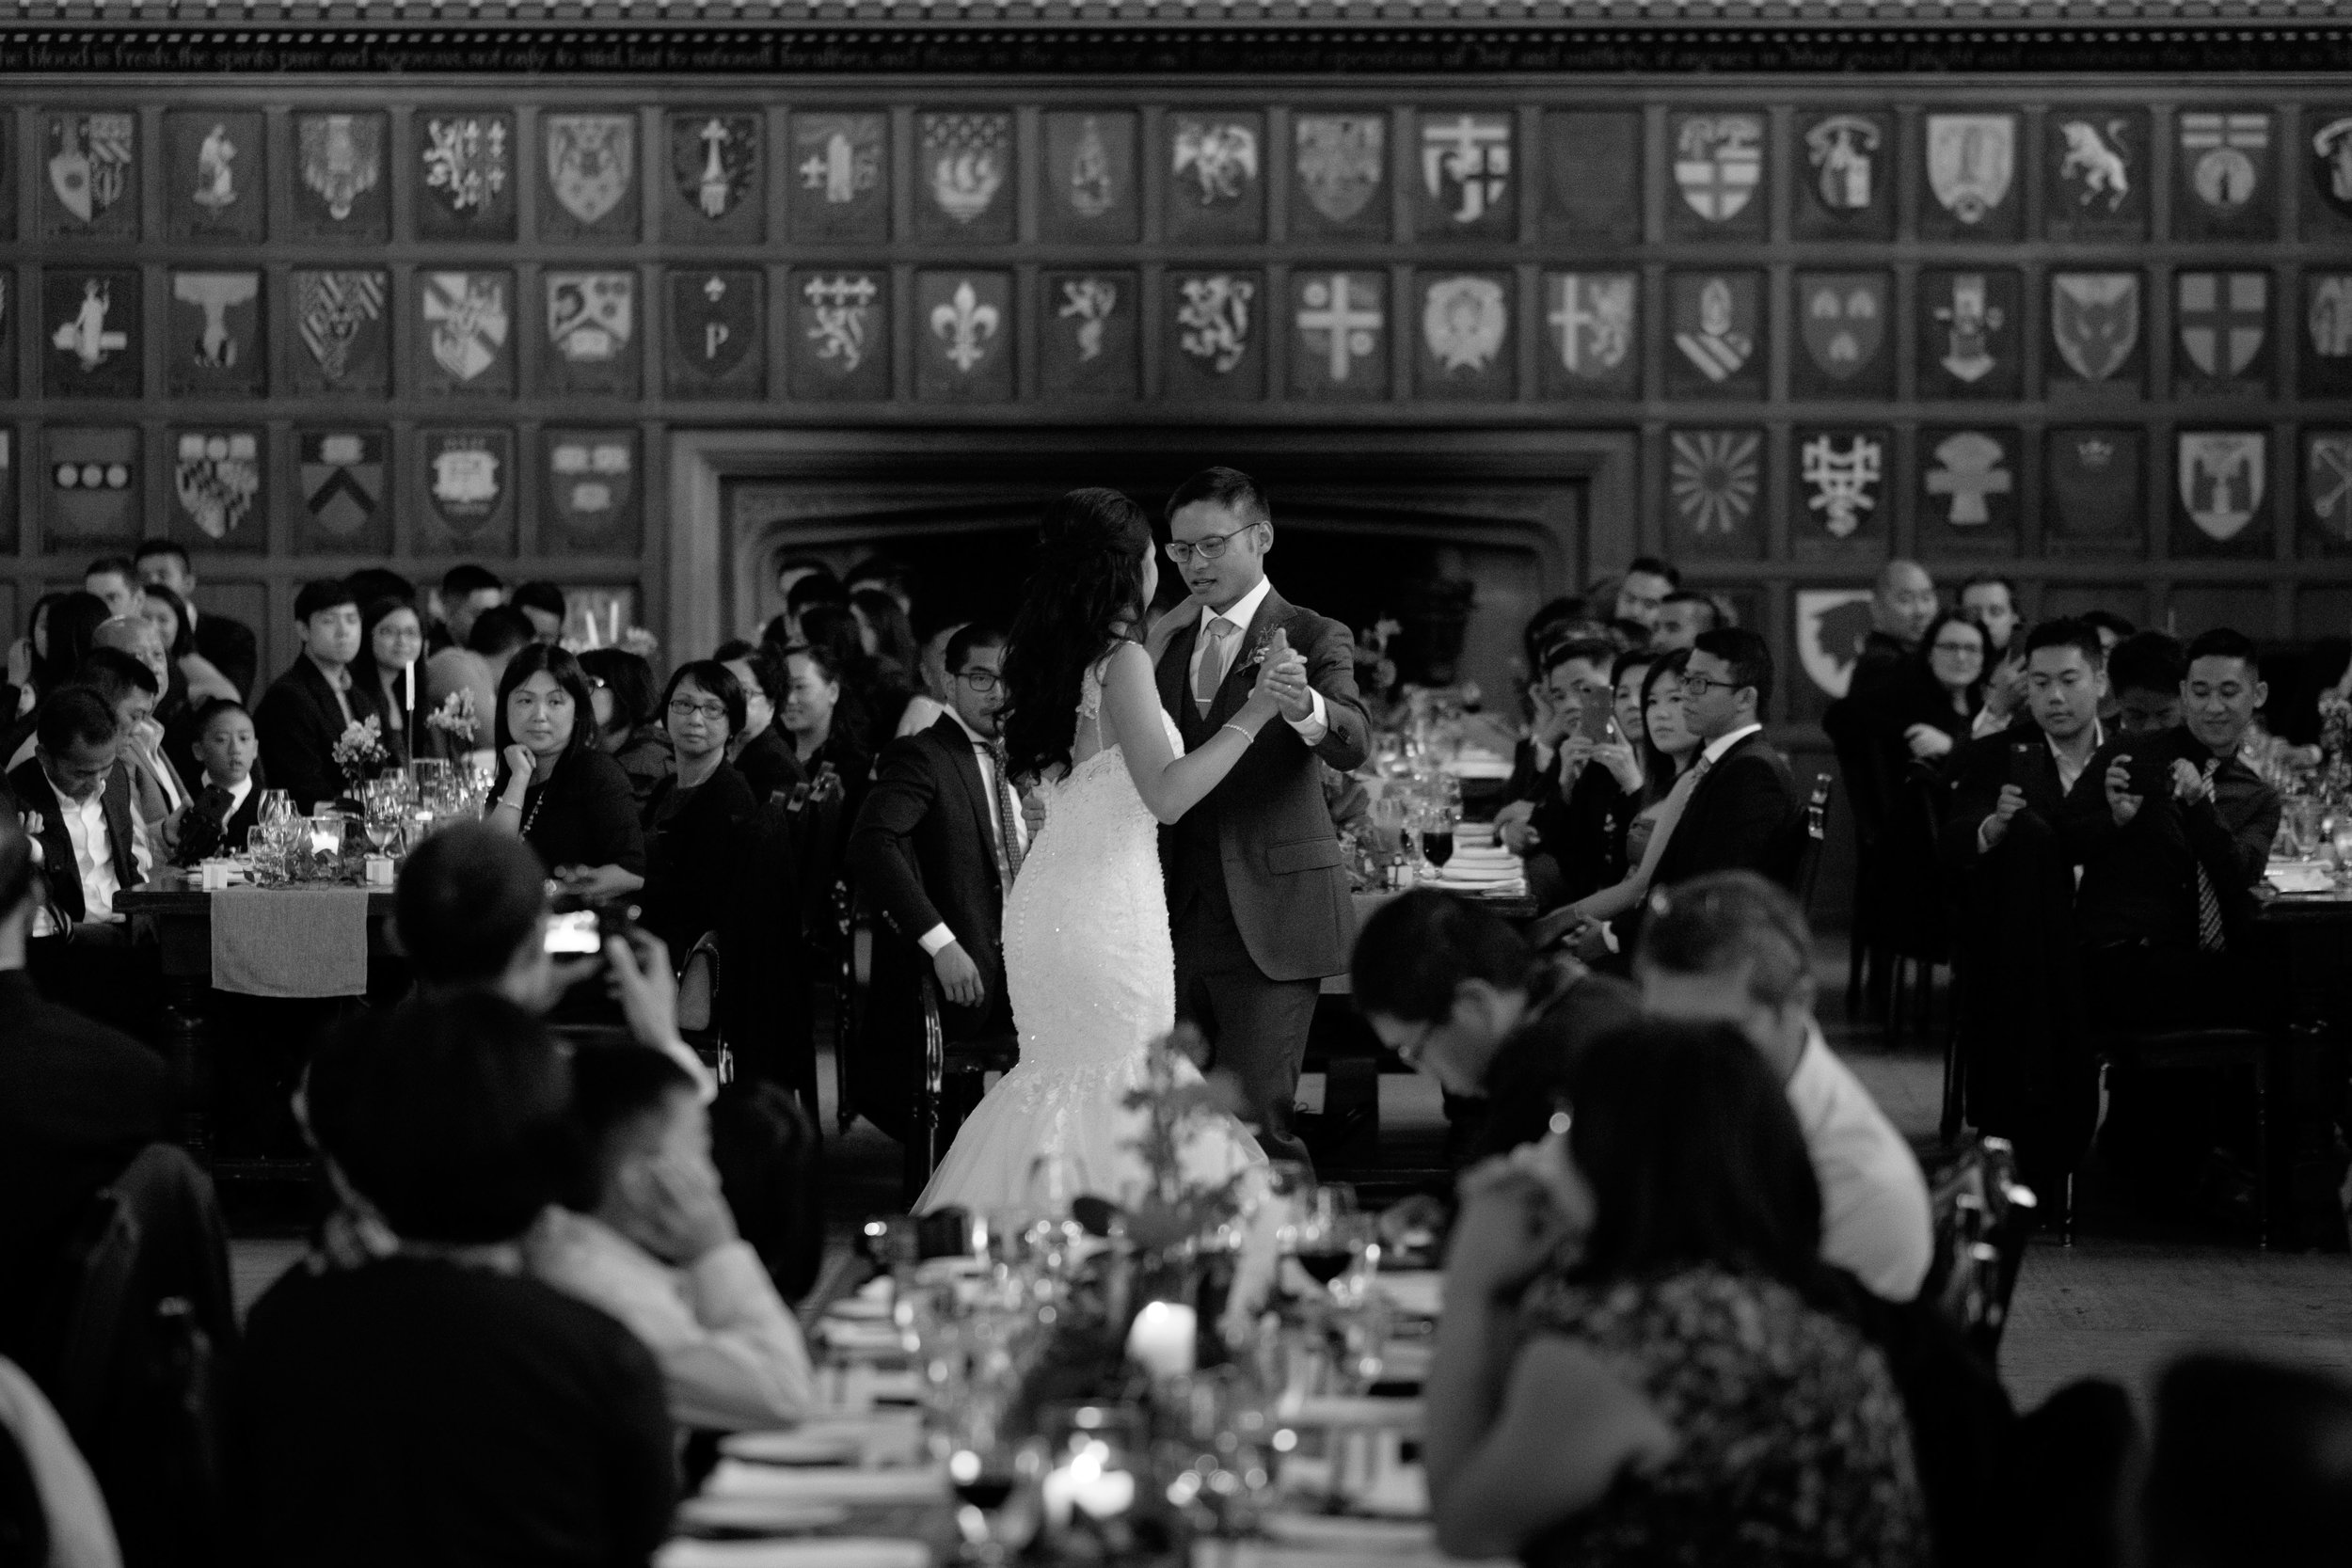 Linda + Andrew enjoy their first dance as a married couple during their wedding receptoin at the Hart House in Toronto.